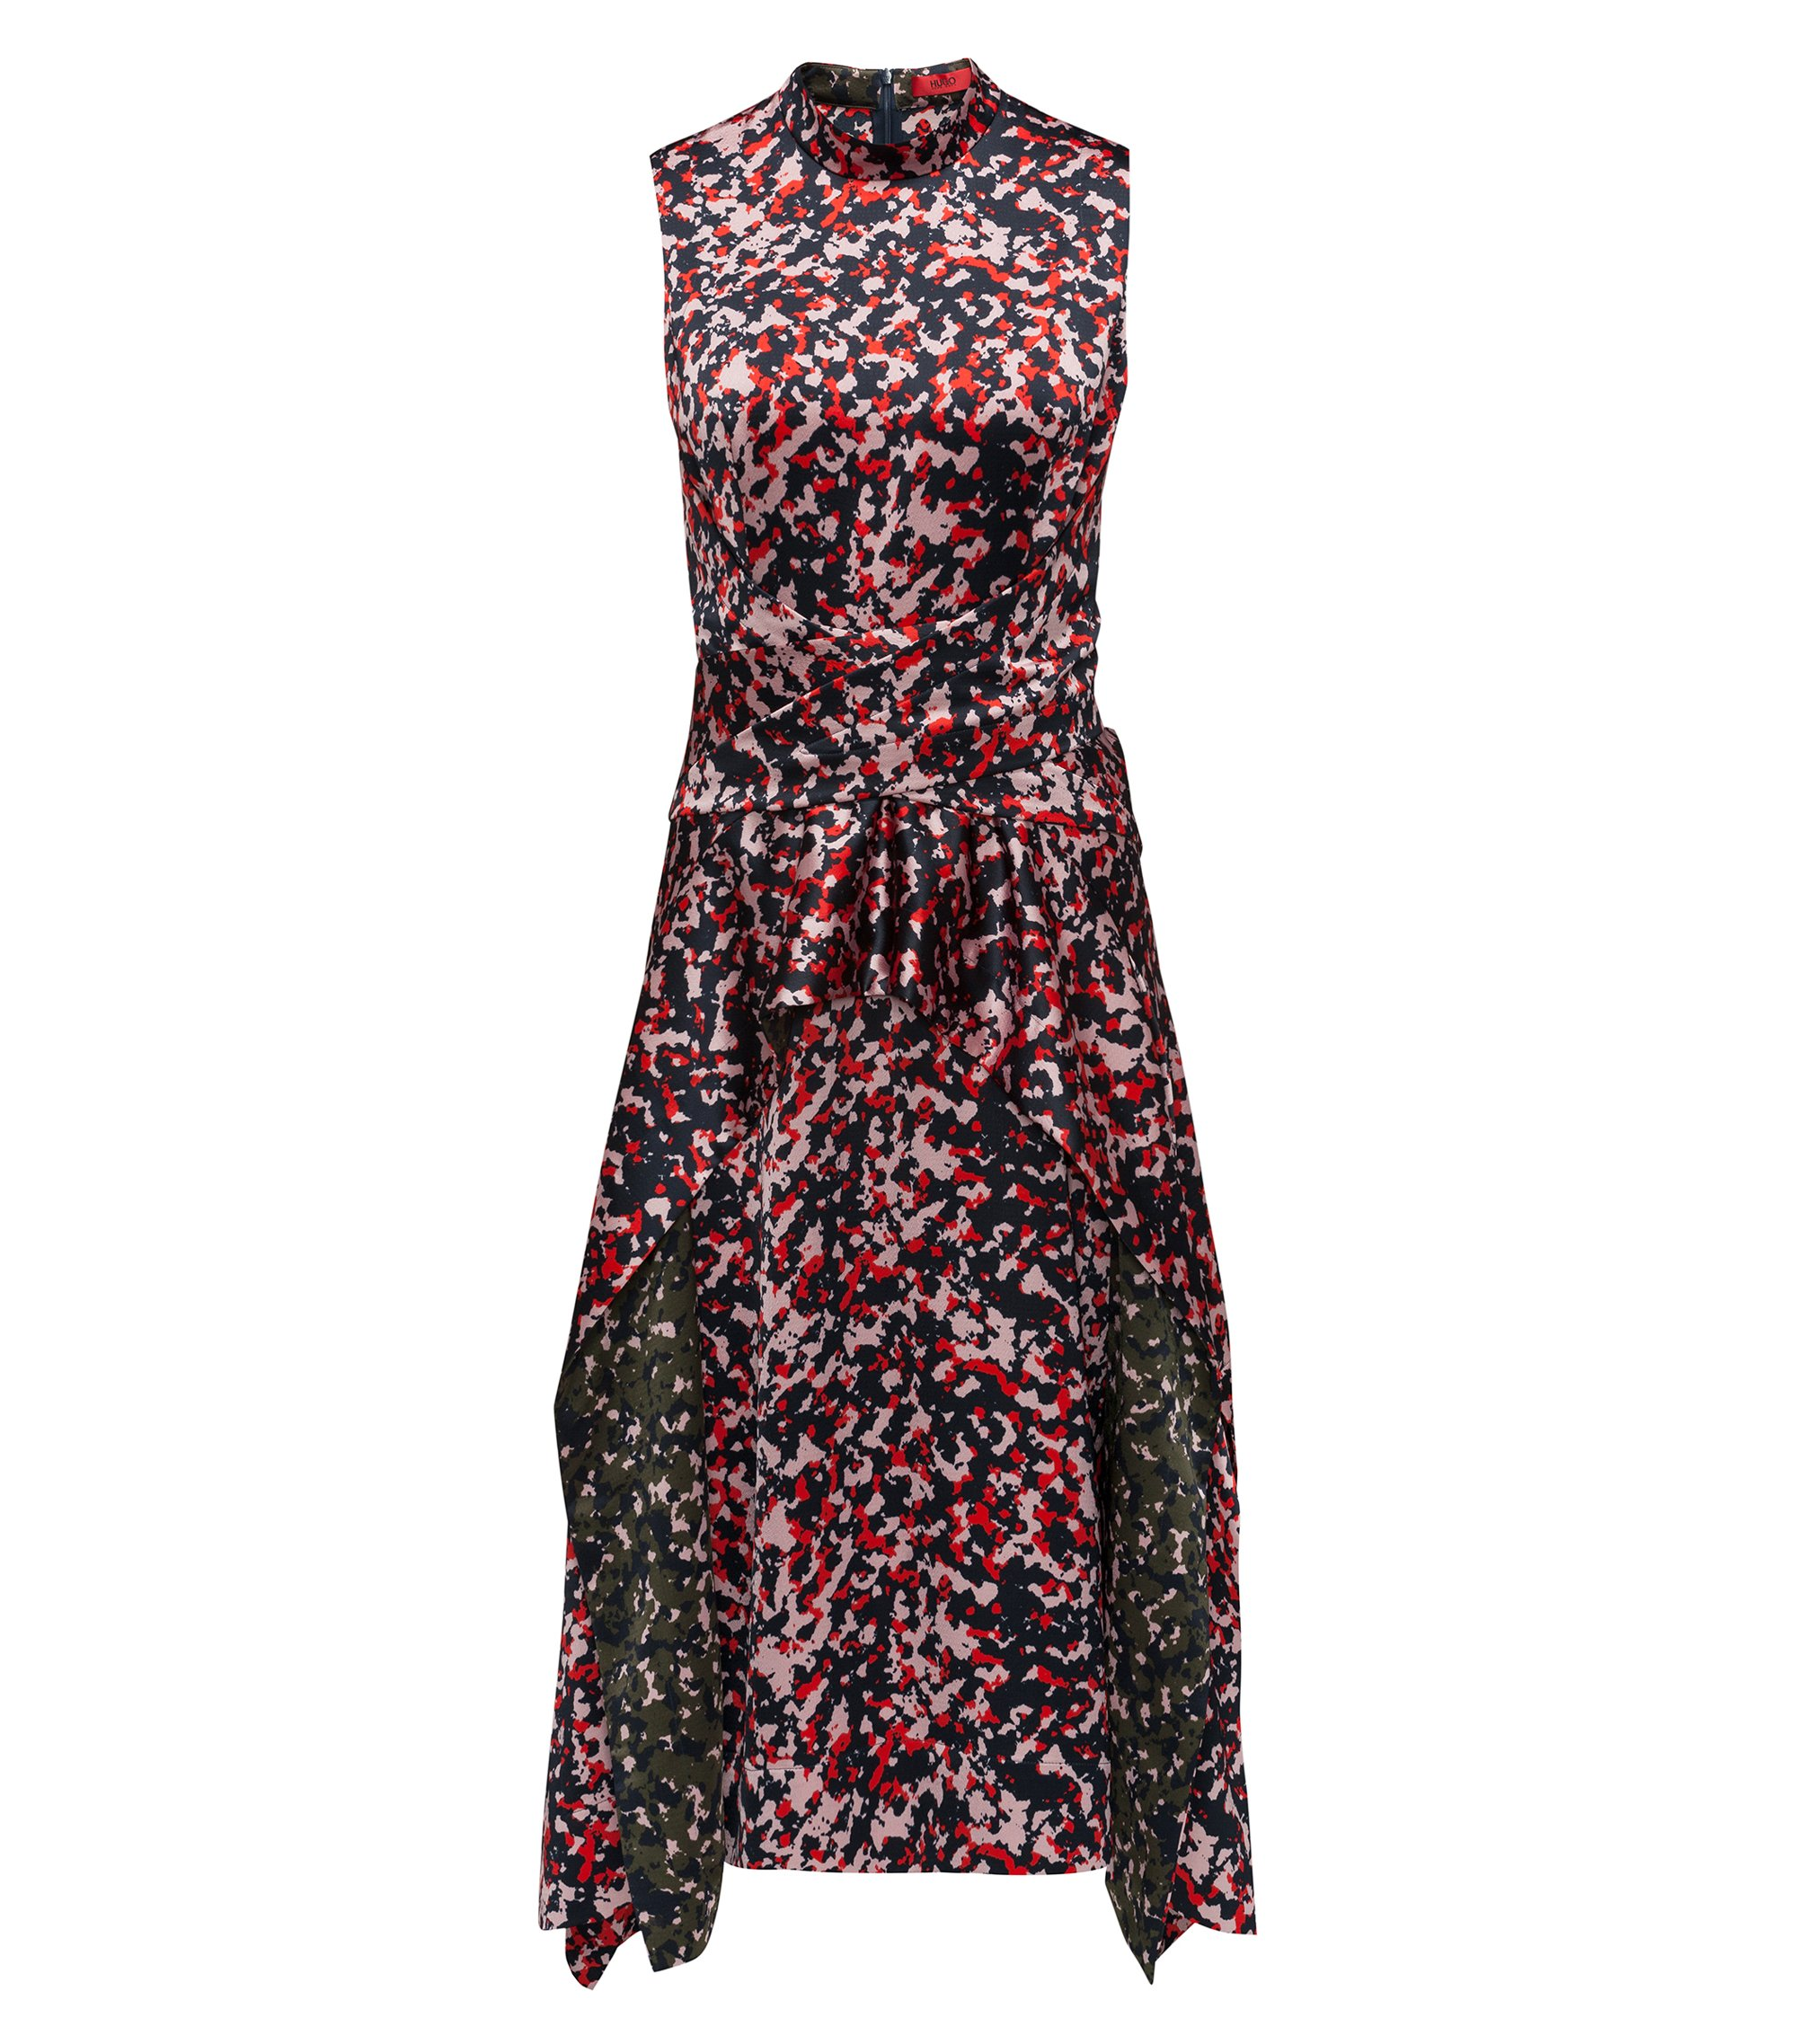 Midi-length dress in camouflage print with knot detail, Patterned